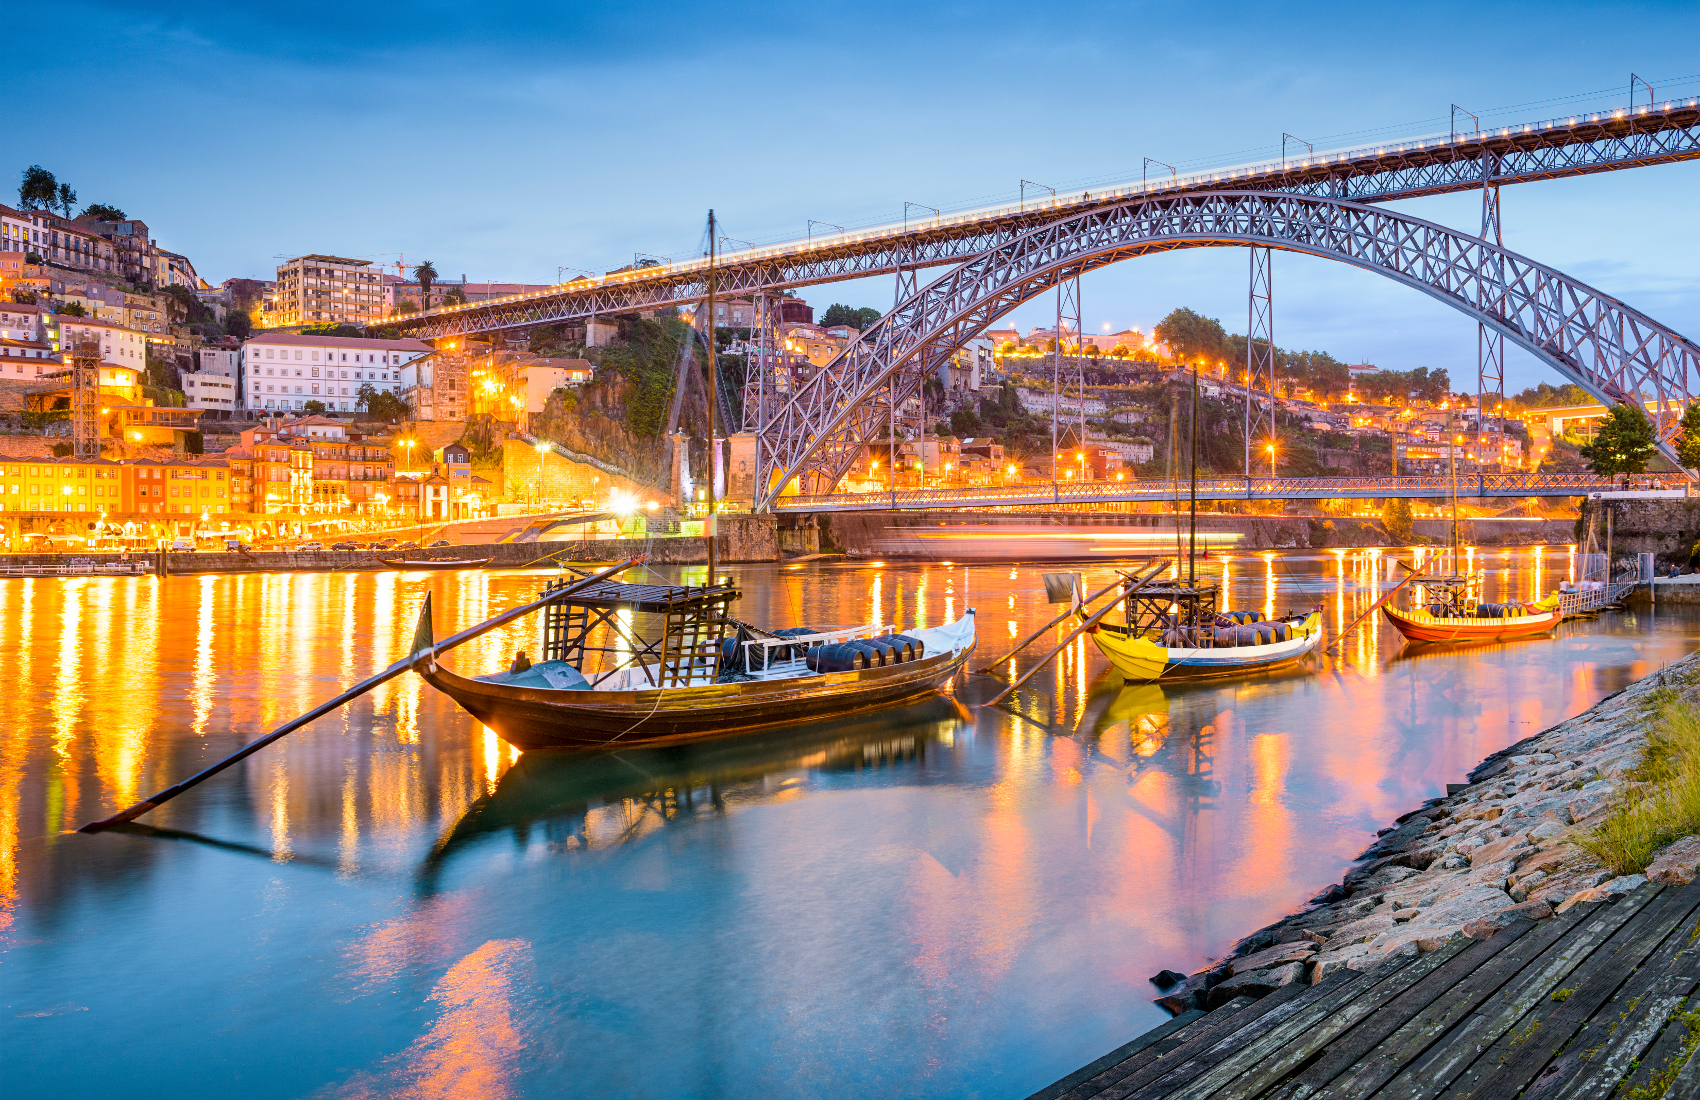 reasons to attend the luxury design & craftsmanship summit 3 Reasons To Attend The Luxury Design & Craftsmanship Summit FEATURE Porto Portugal Cityscape 000051839122 XXXLarge 1